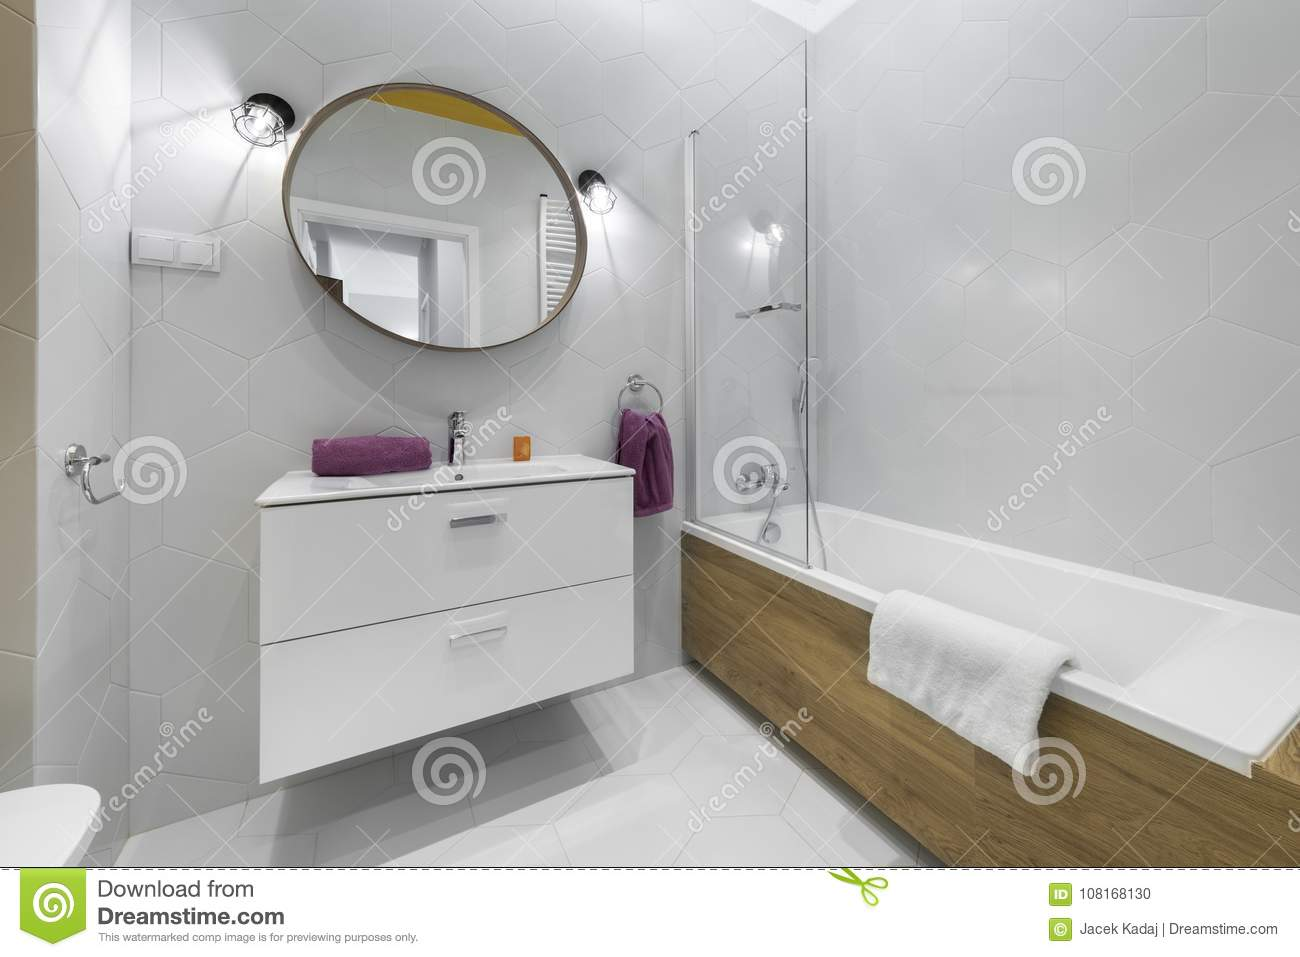 Modern Bathroom With Oval Mirror Stock Photo Image Of Architecture Housing 108168130